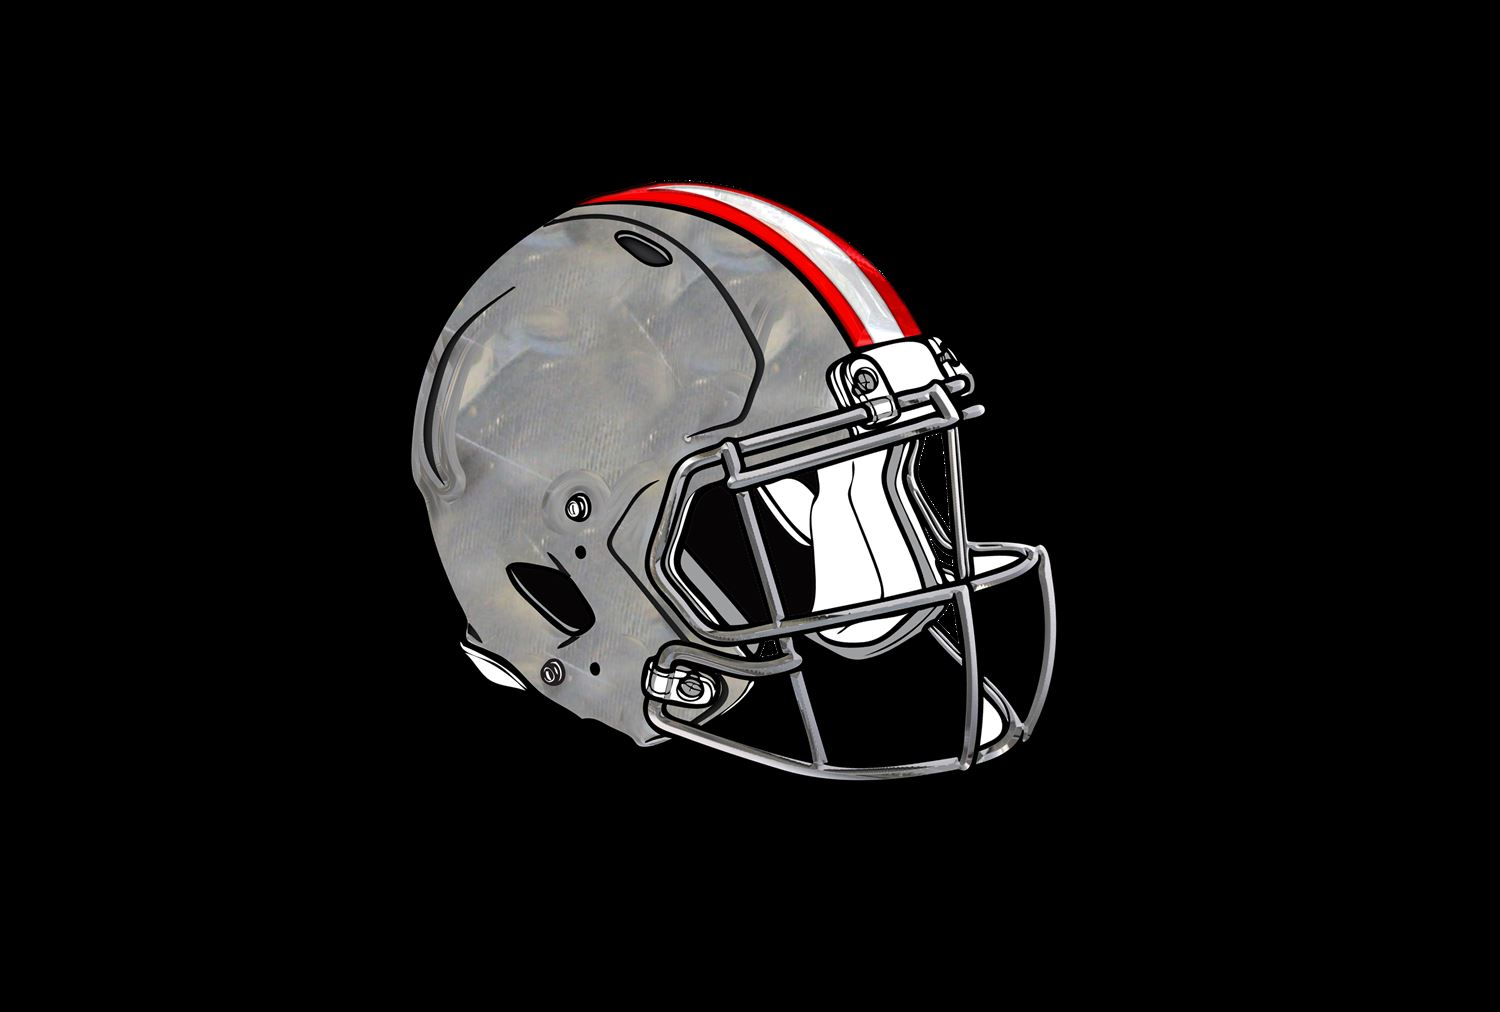 Provine High School - Provine RAM Football